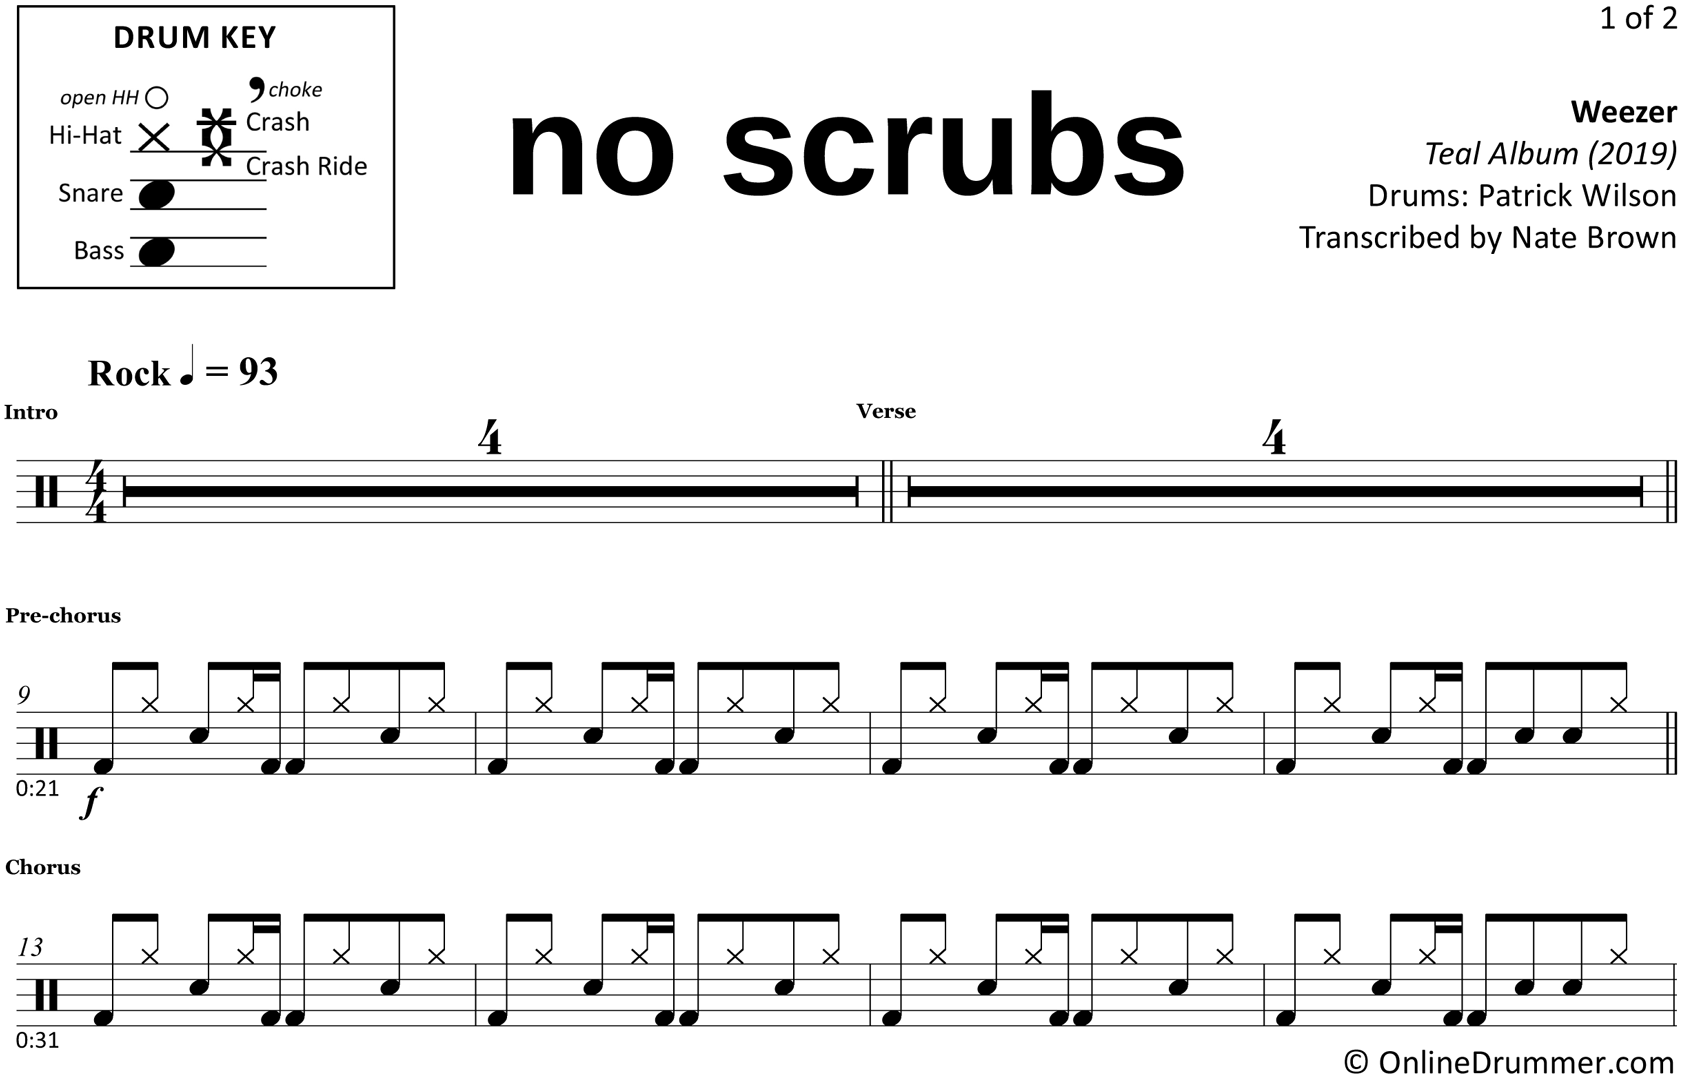 No Scrubs - Weezer - Drum Sheet Music